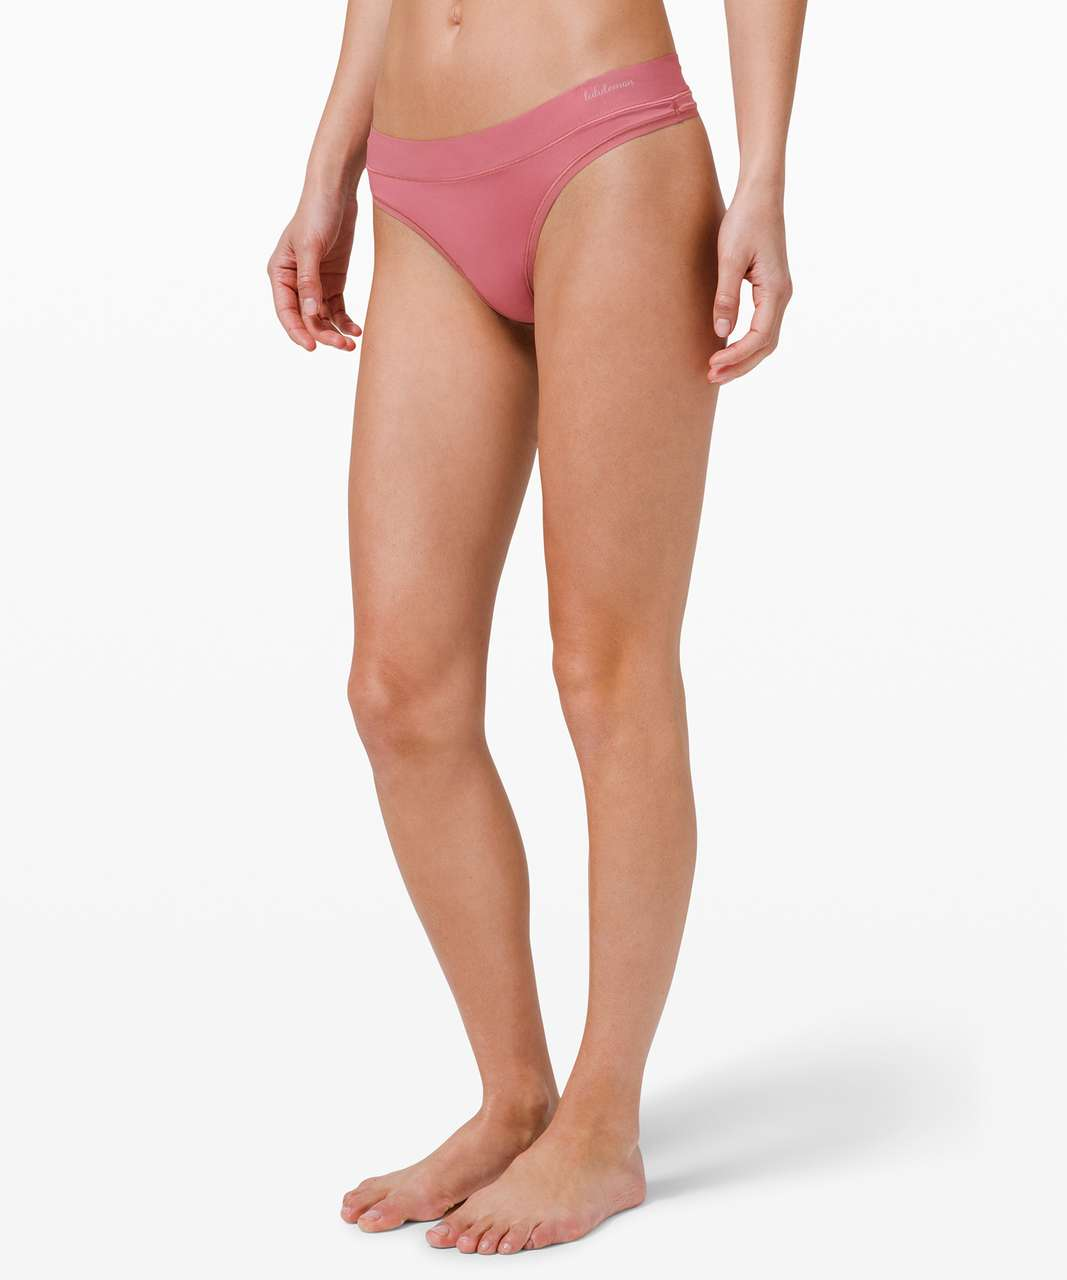 Lululemon Soft Breathable Thong *3 Pack - Incognito Camo Multi Grey / Brier Rose / Chrome